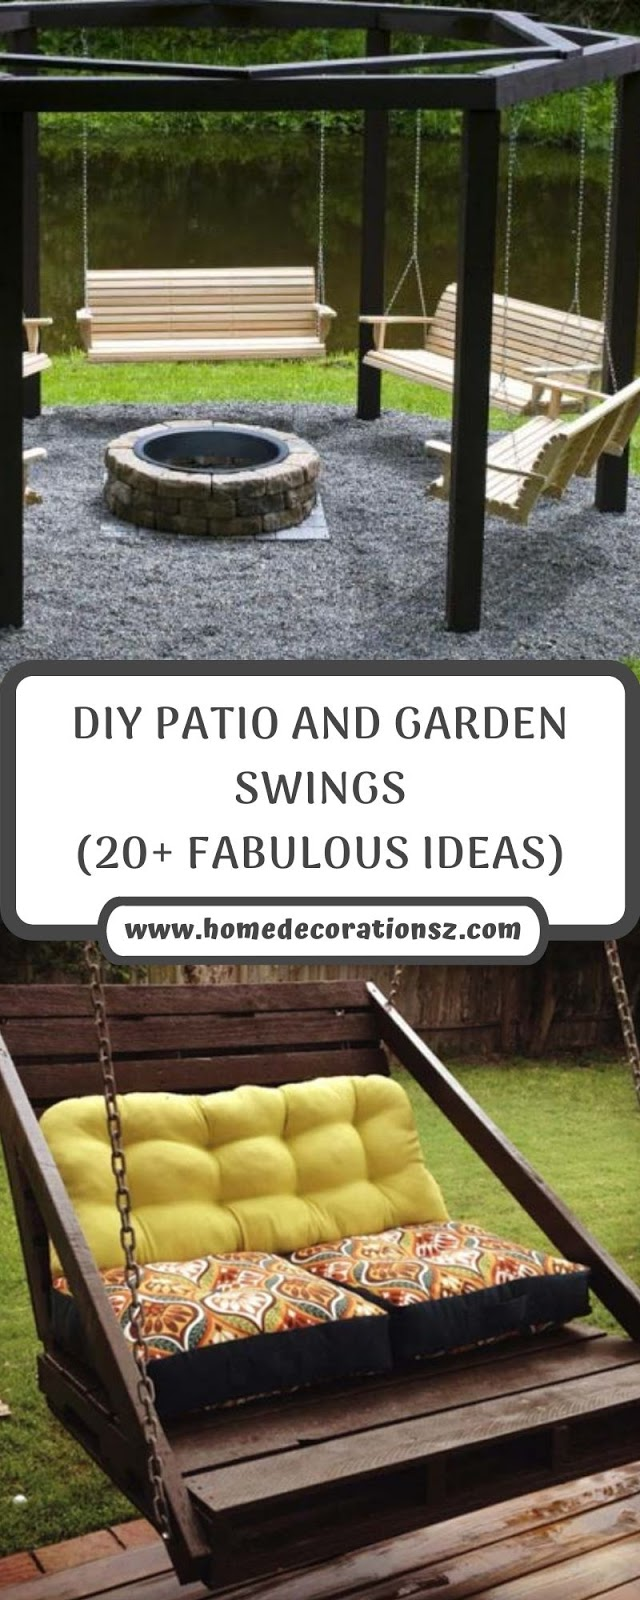 DIY PATIO AND GARDEN SWINGS (20+ FABULOUS IDEAS)